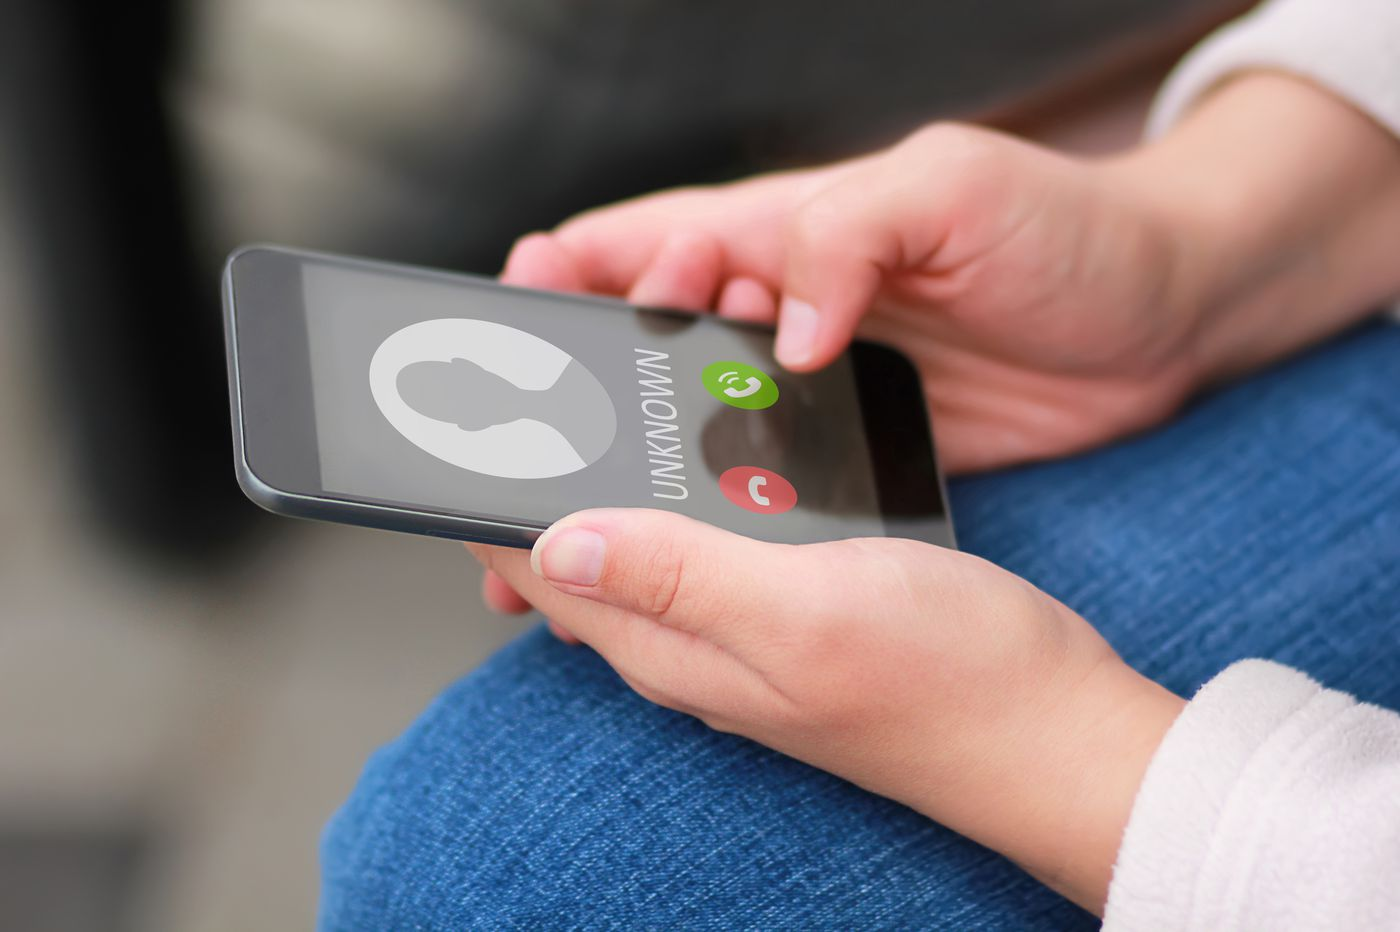 Phone scam alert: No legit COVID-19 contact tracer will ask you these questions